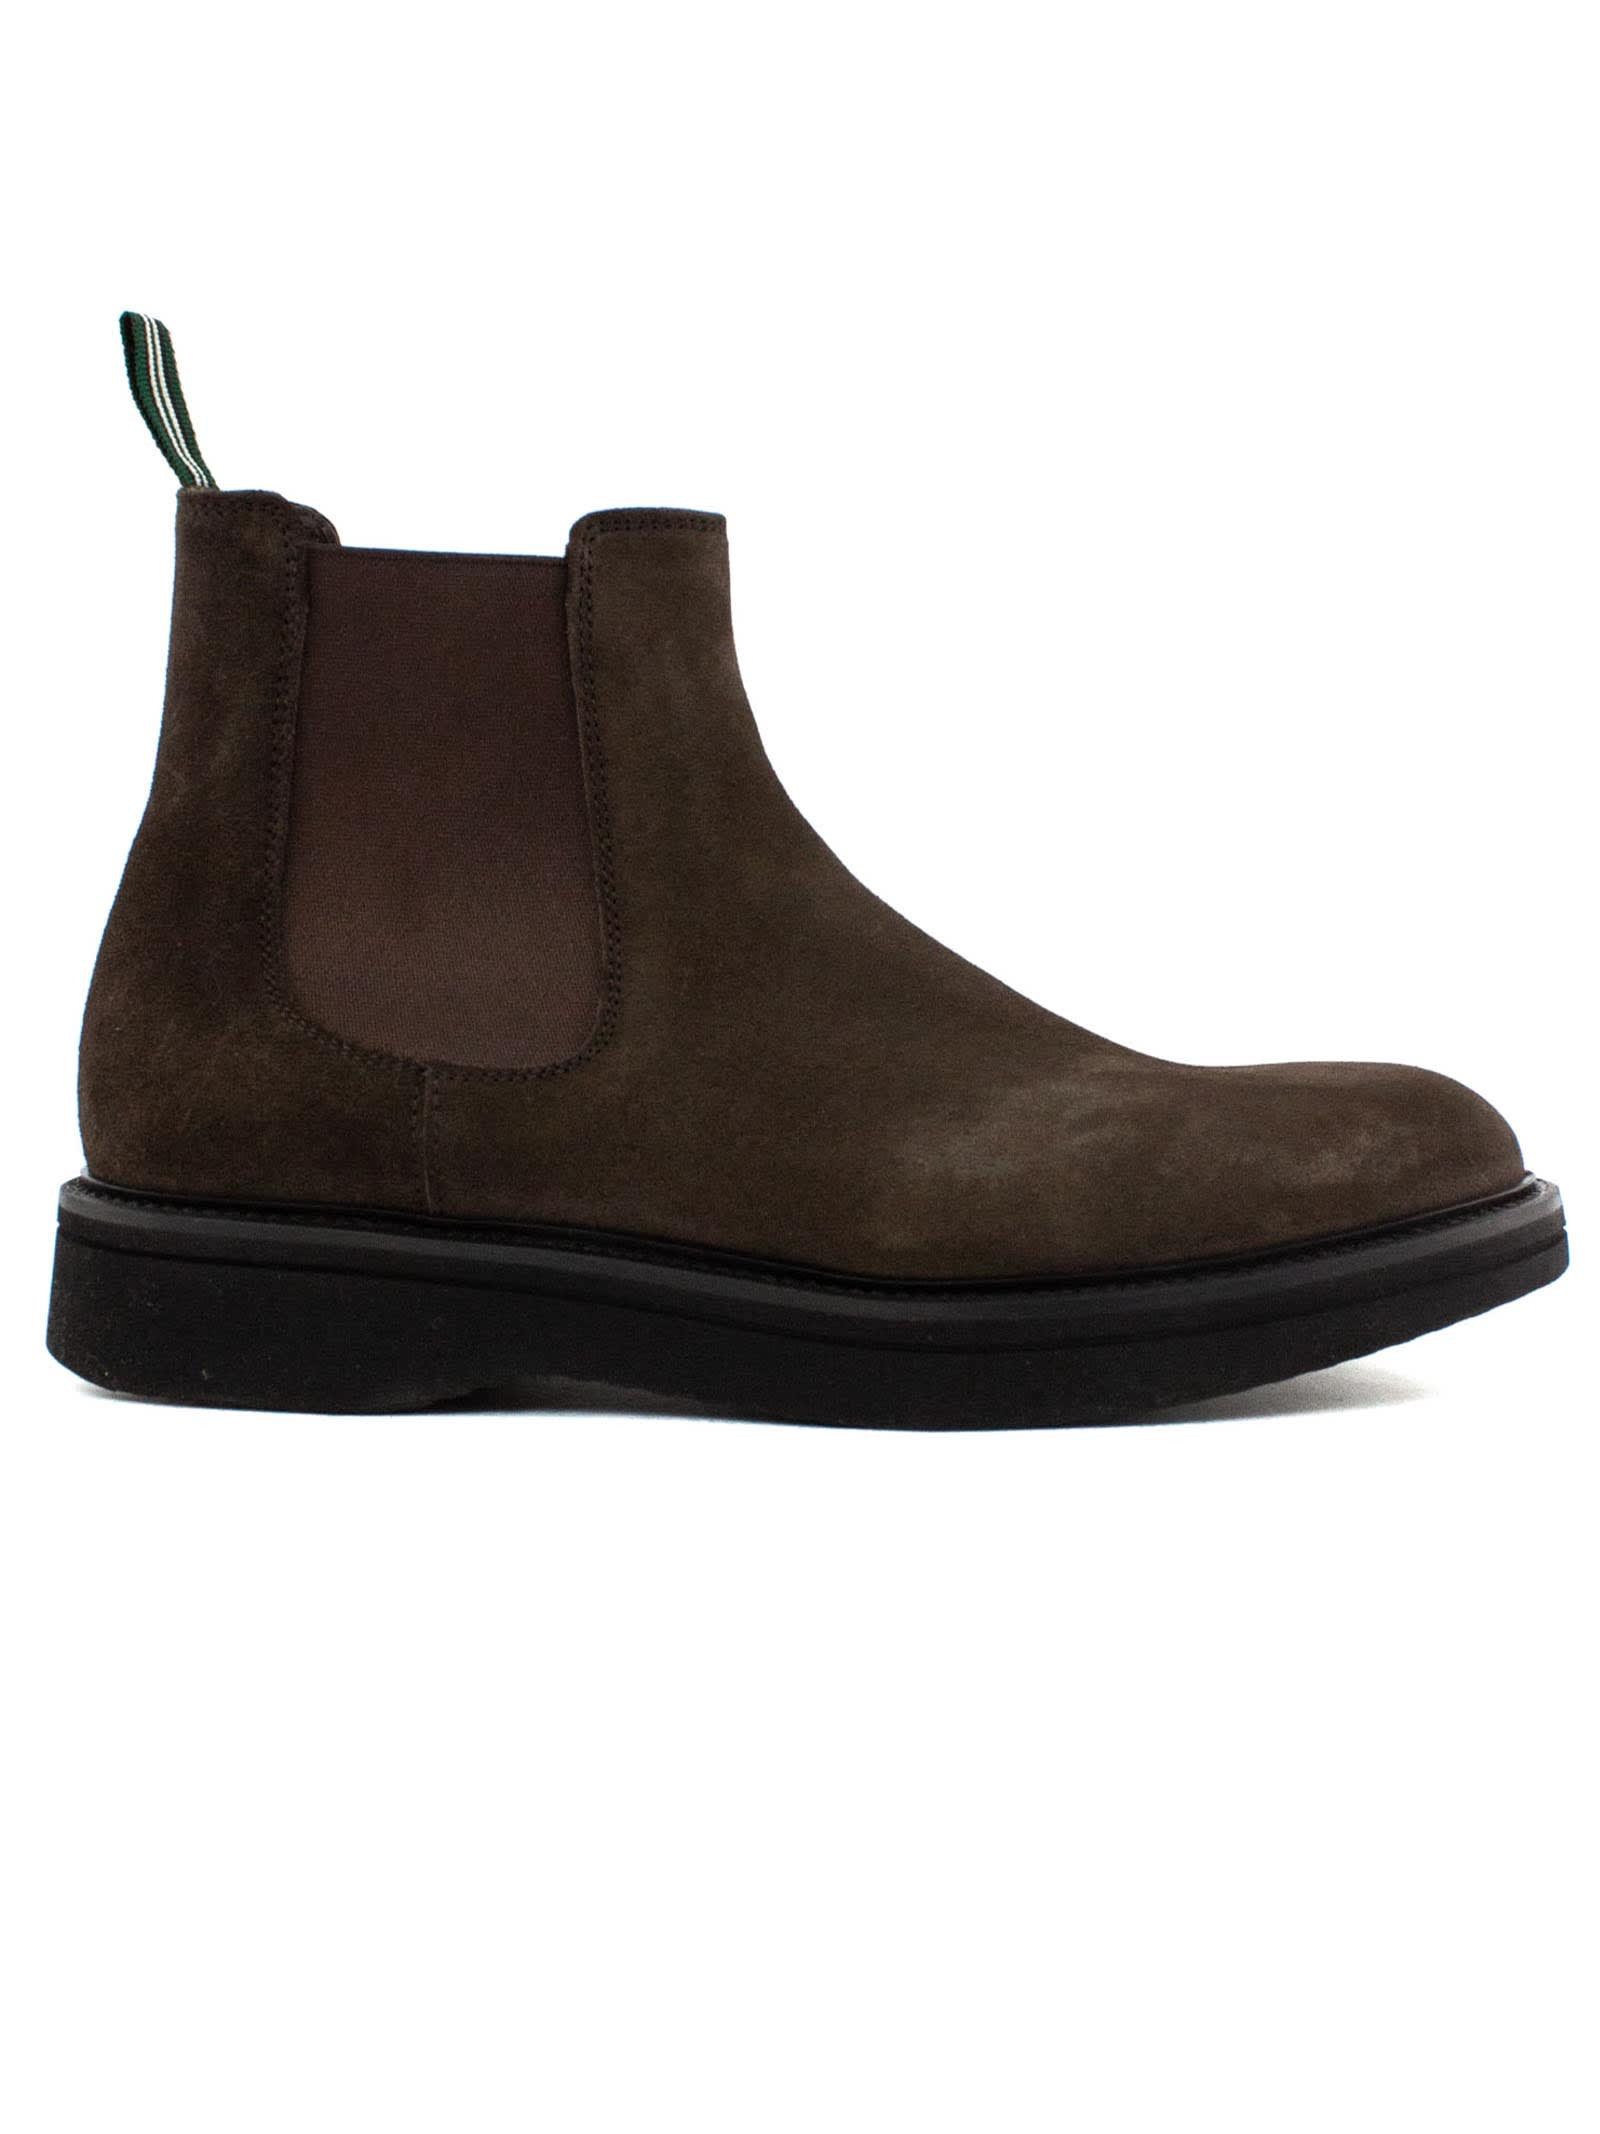 Dark Brown Suede Ankle Boot